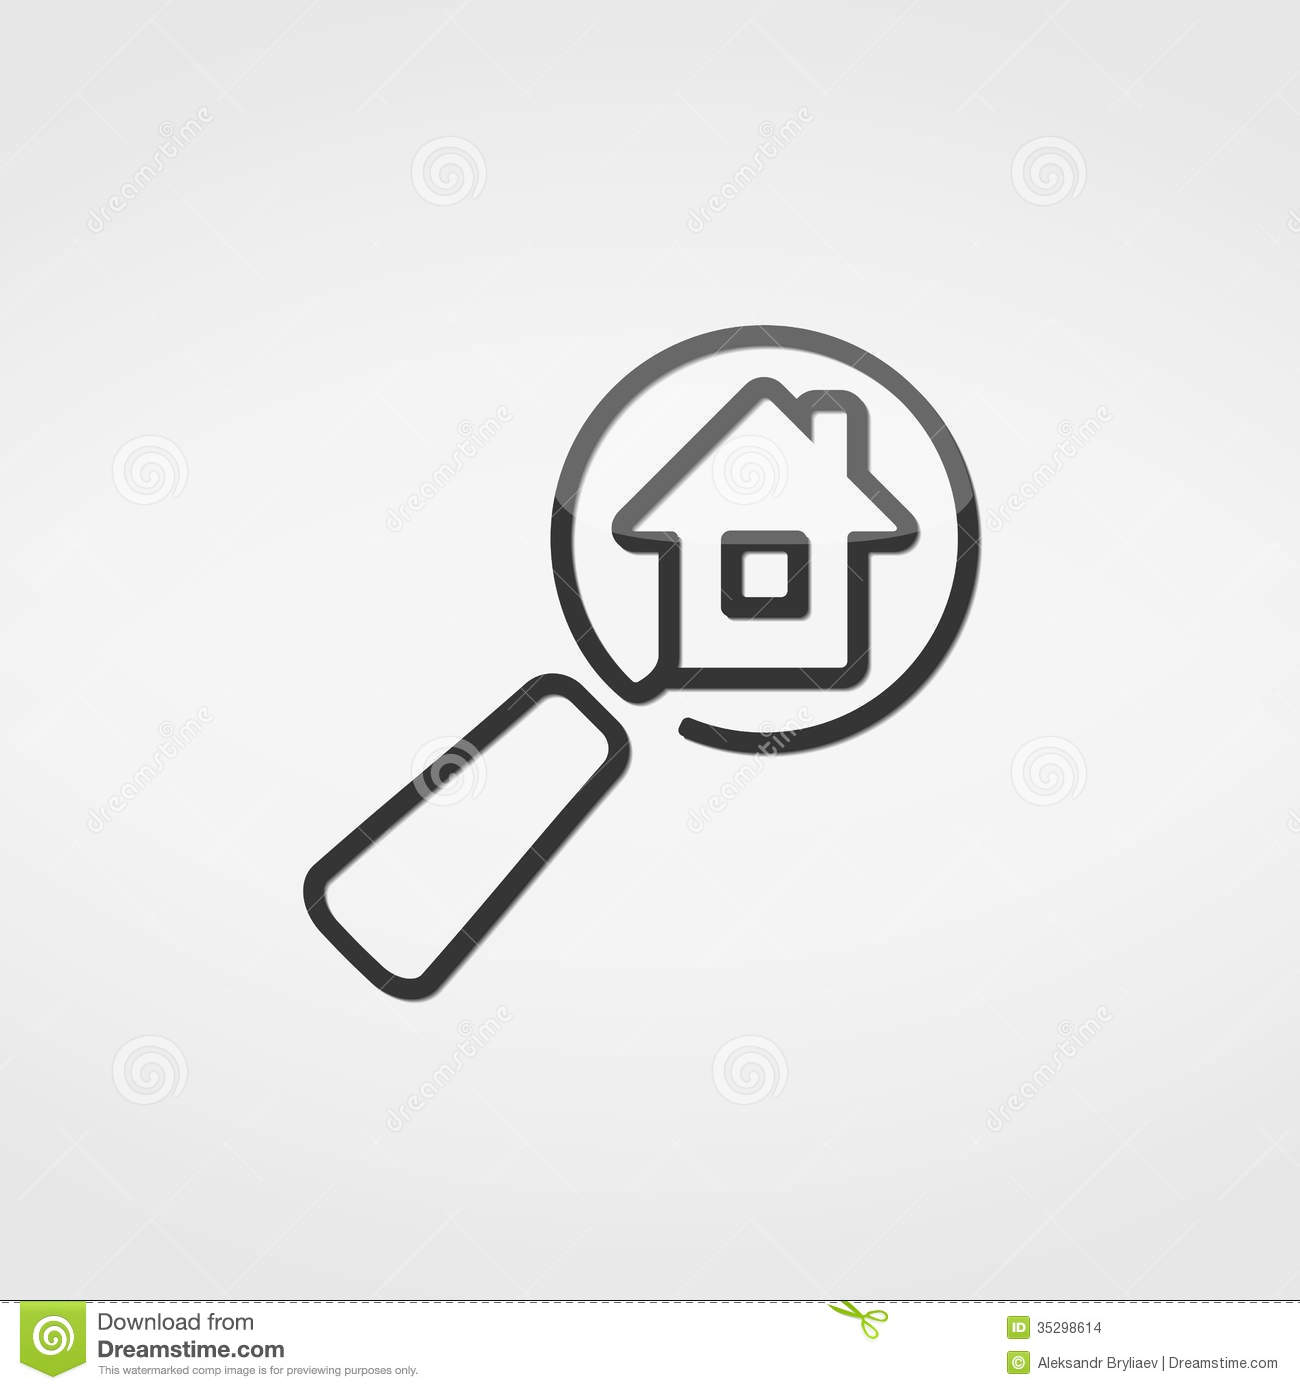 Search House Icon Stock Images - Image: 35298614: www.dreamstime.com/stock-images-search-house-icon-simple-gray...